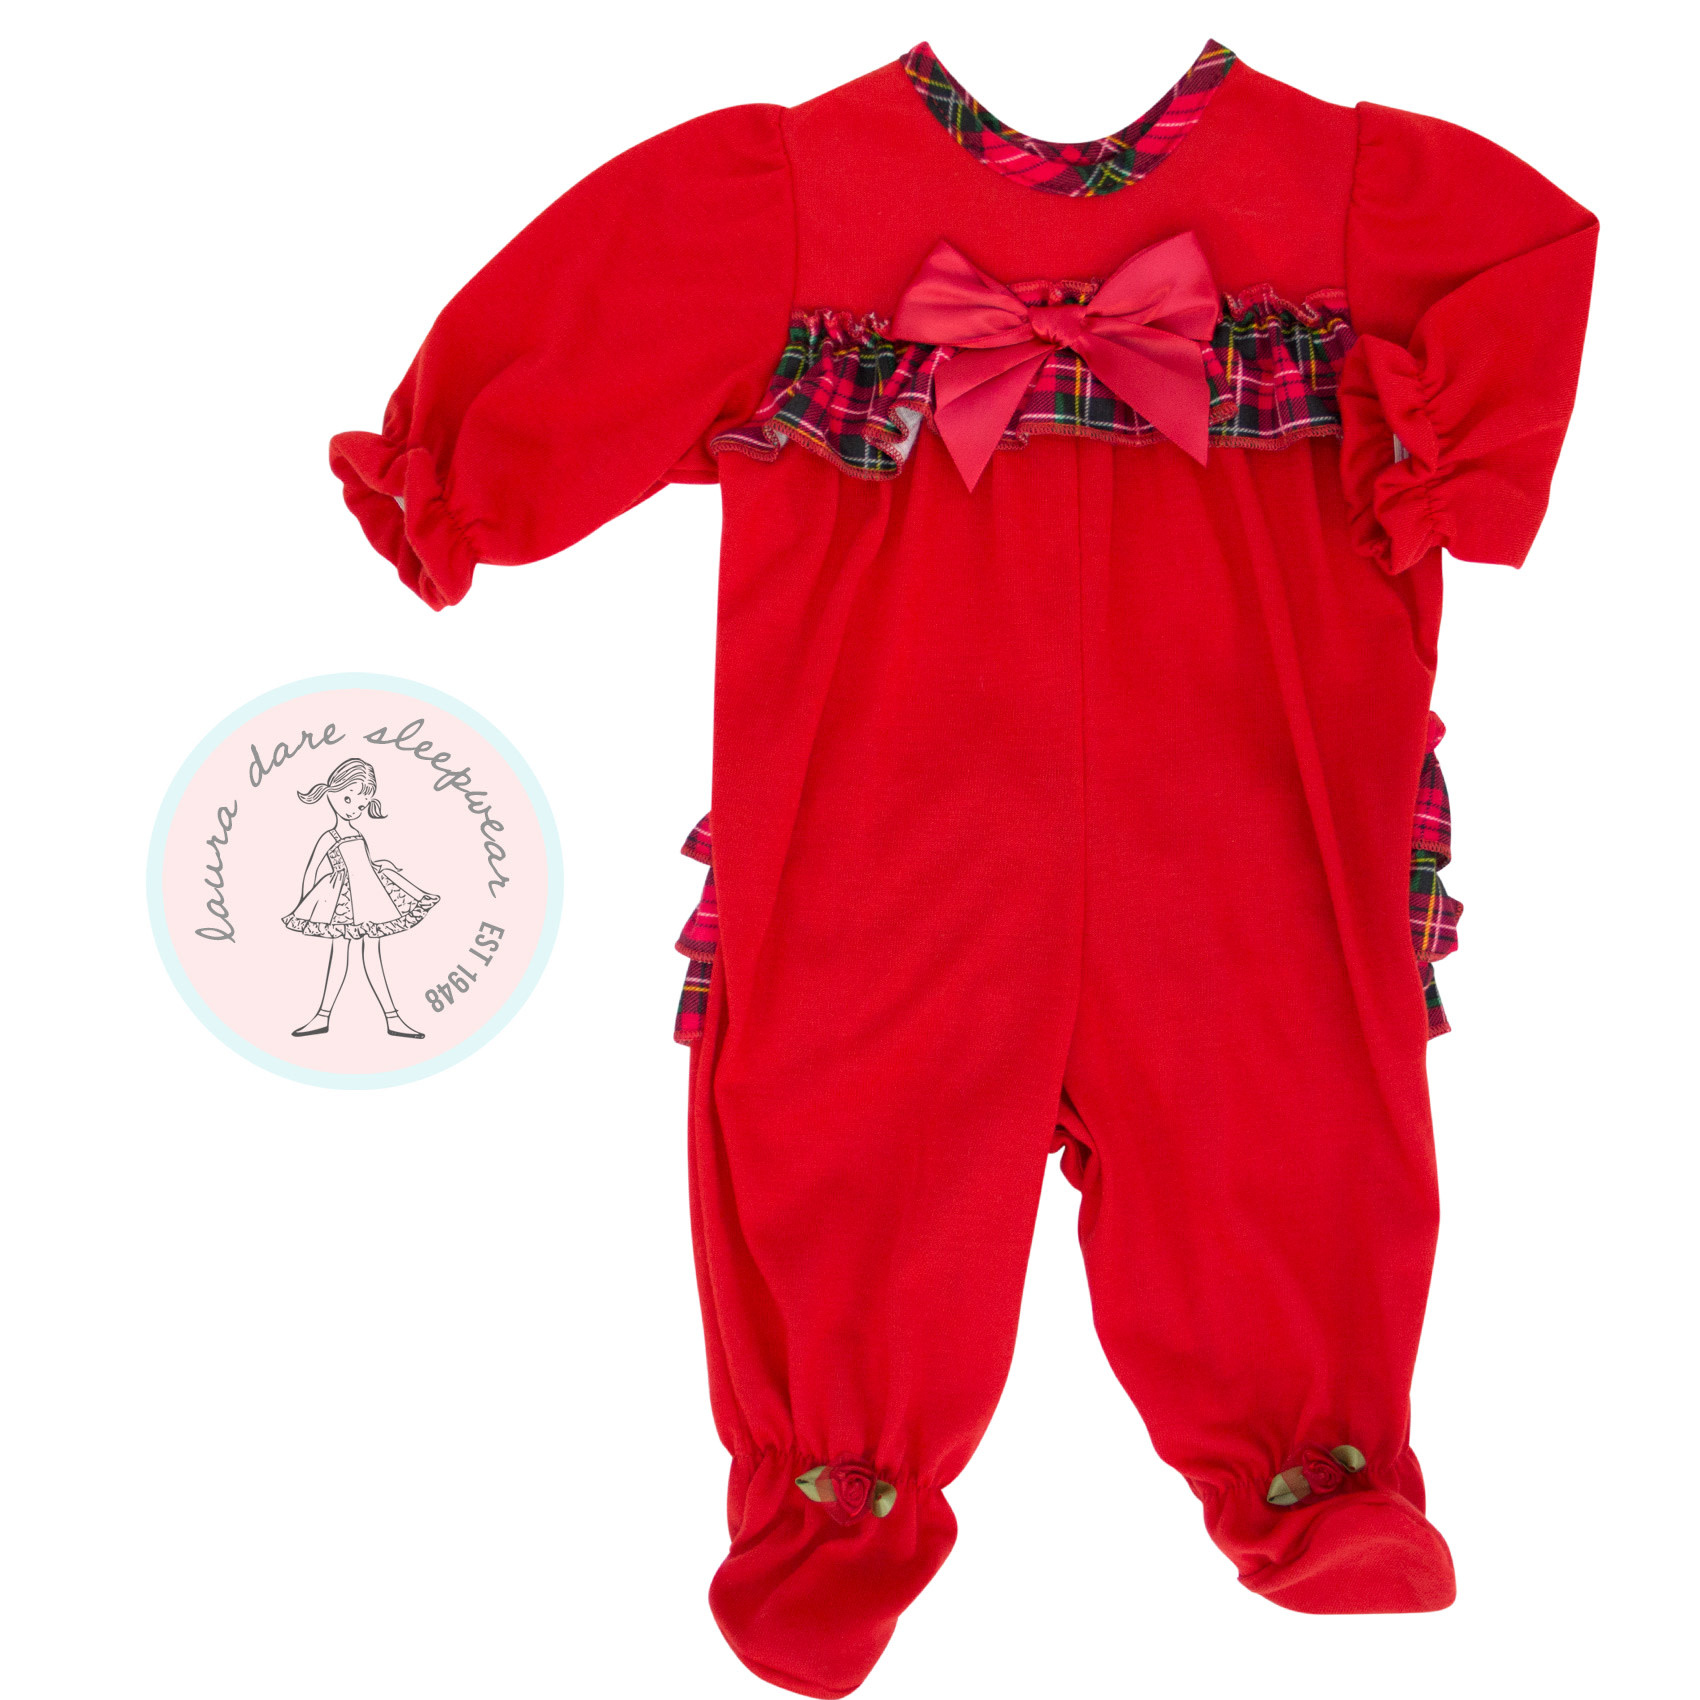 Laura Dare Baby Girl Frilly Back Holiday PJ's